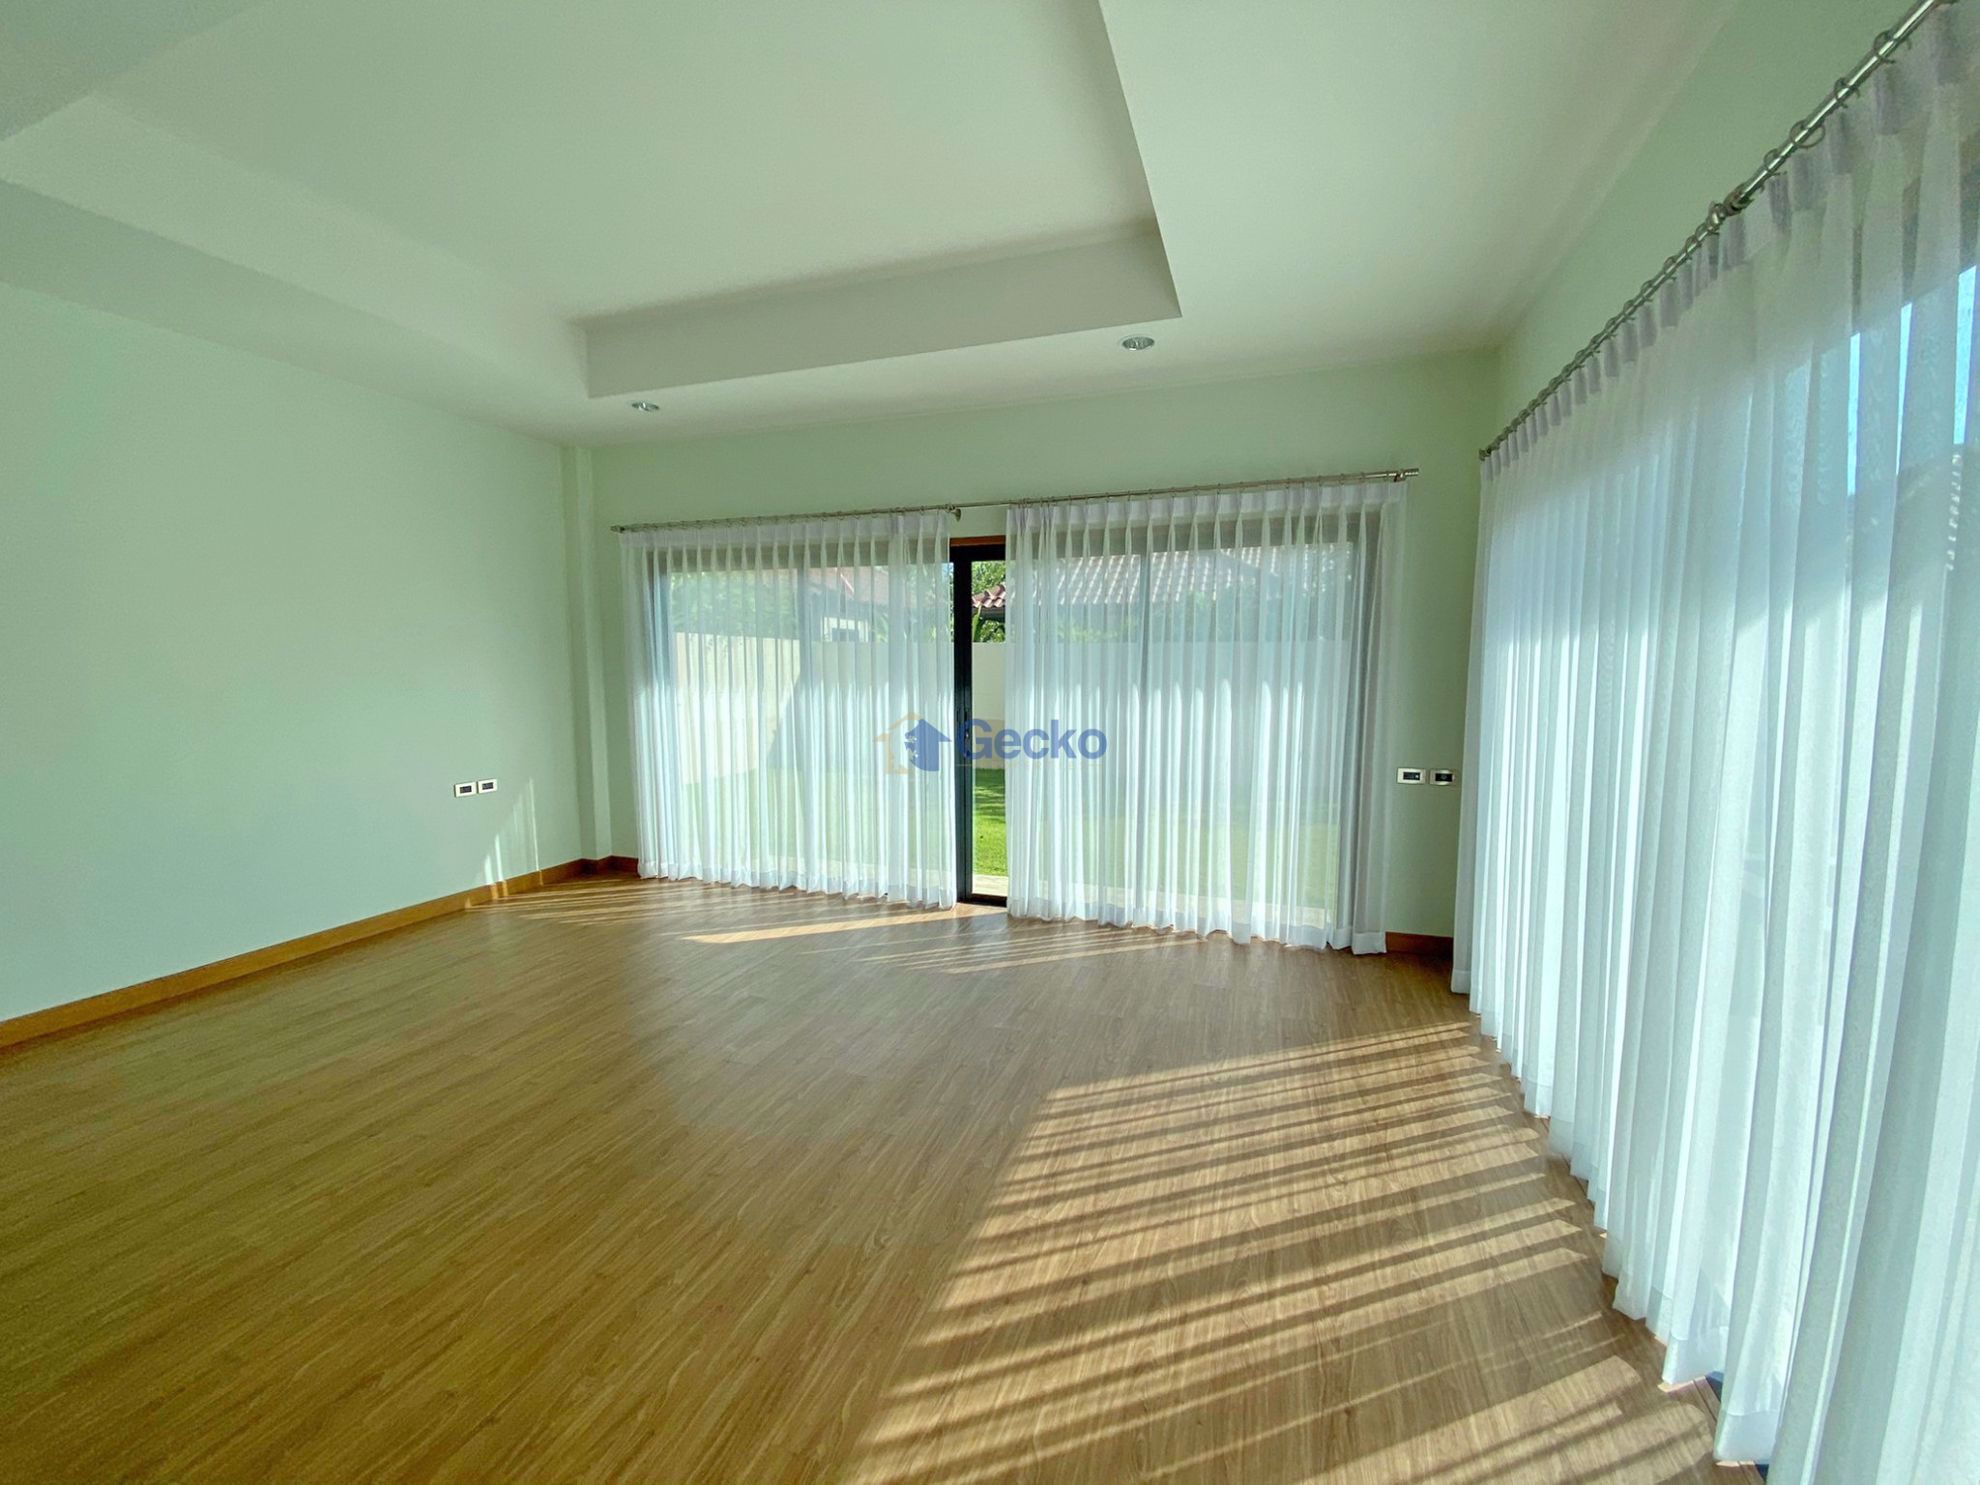 Picture of 3 Bedrooms bed in House in Baan Balina 3 in Huay Yai H009242